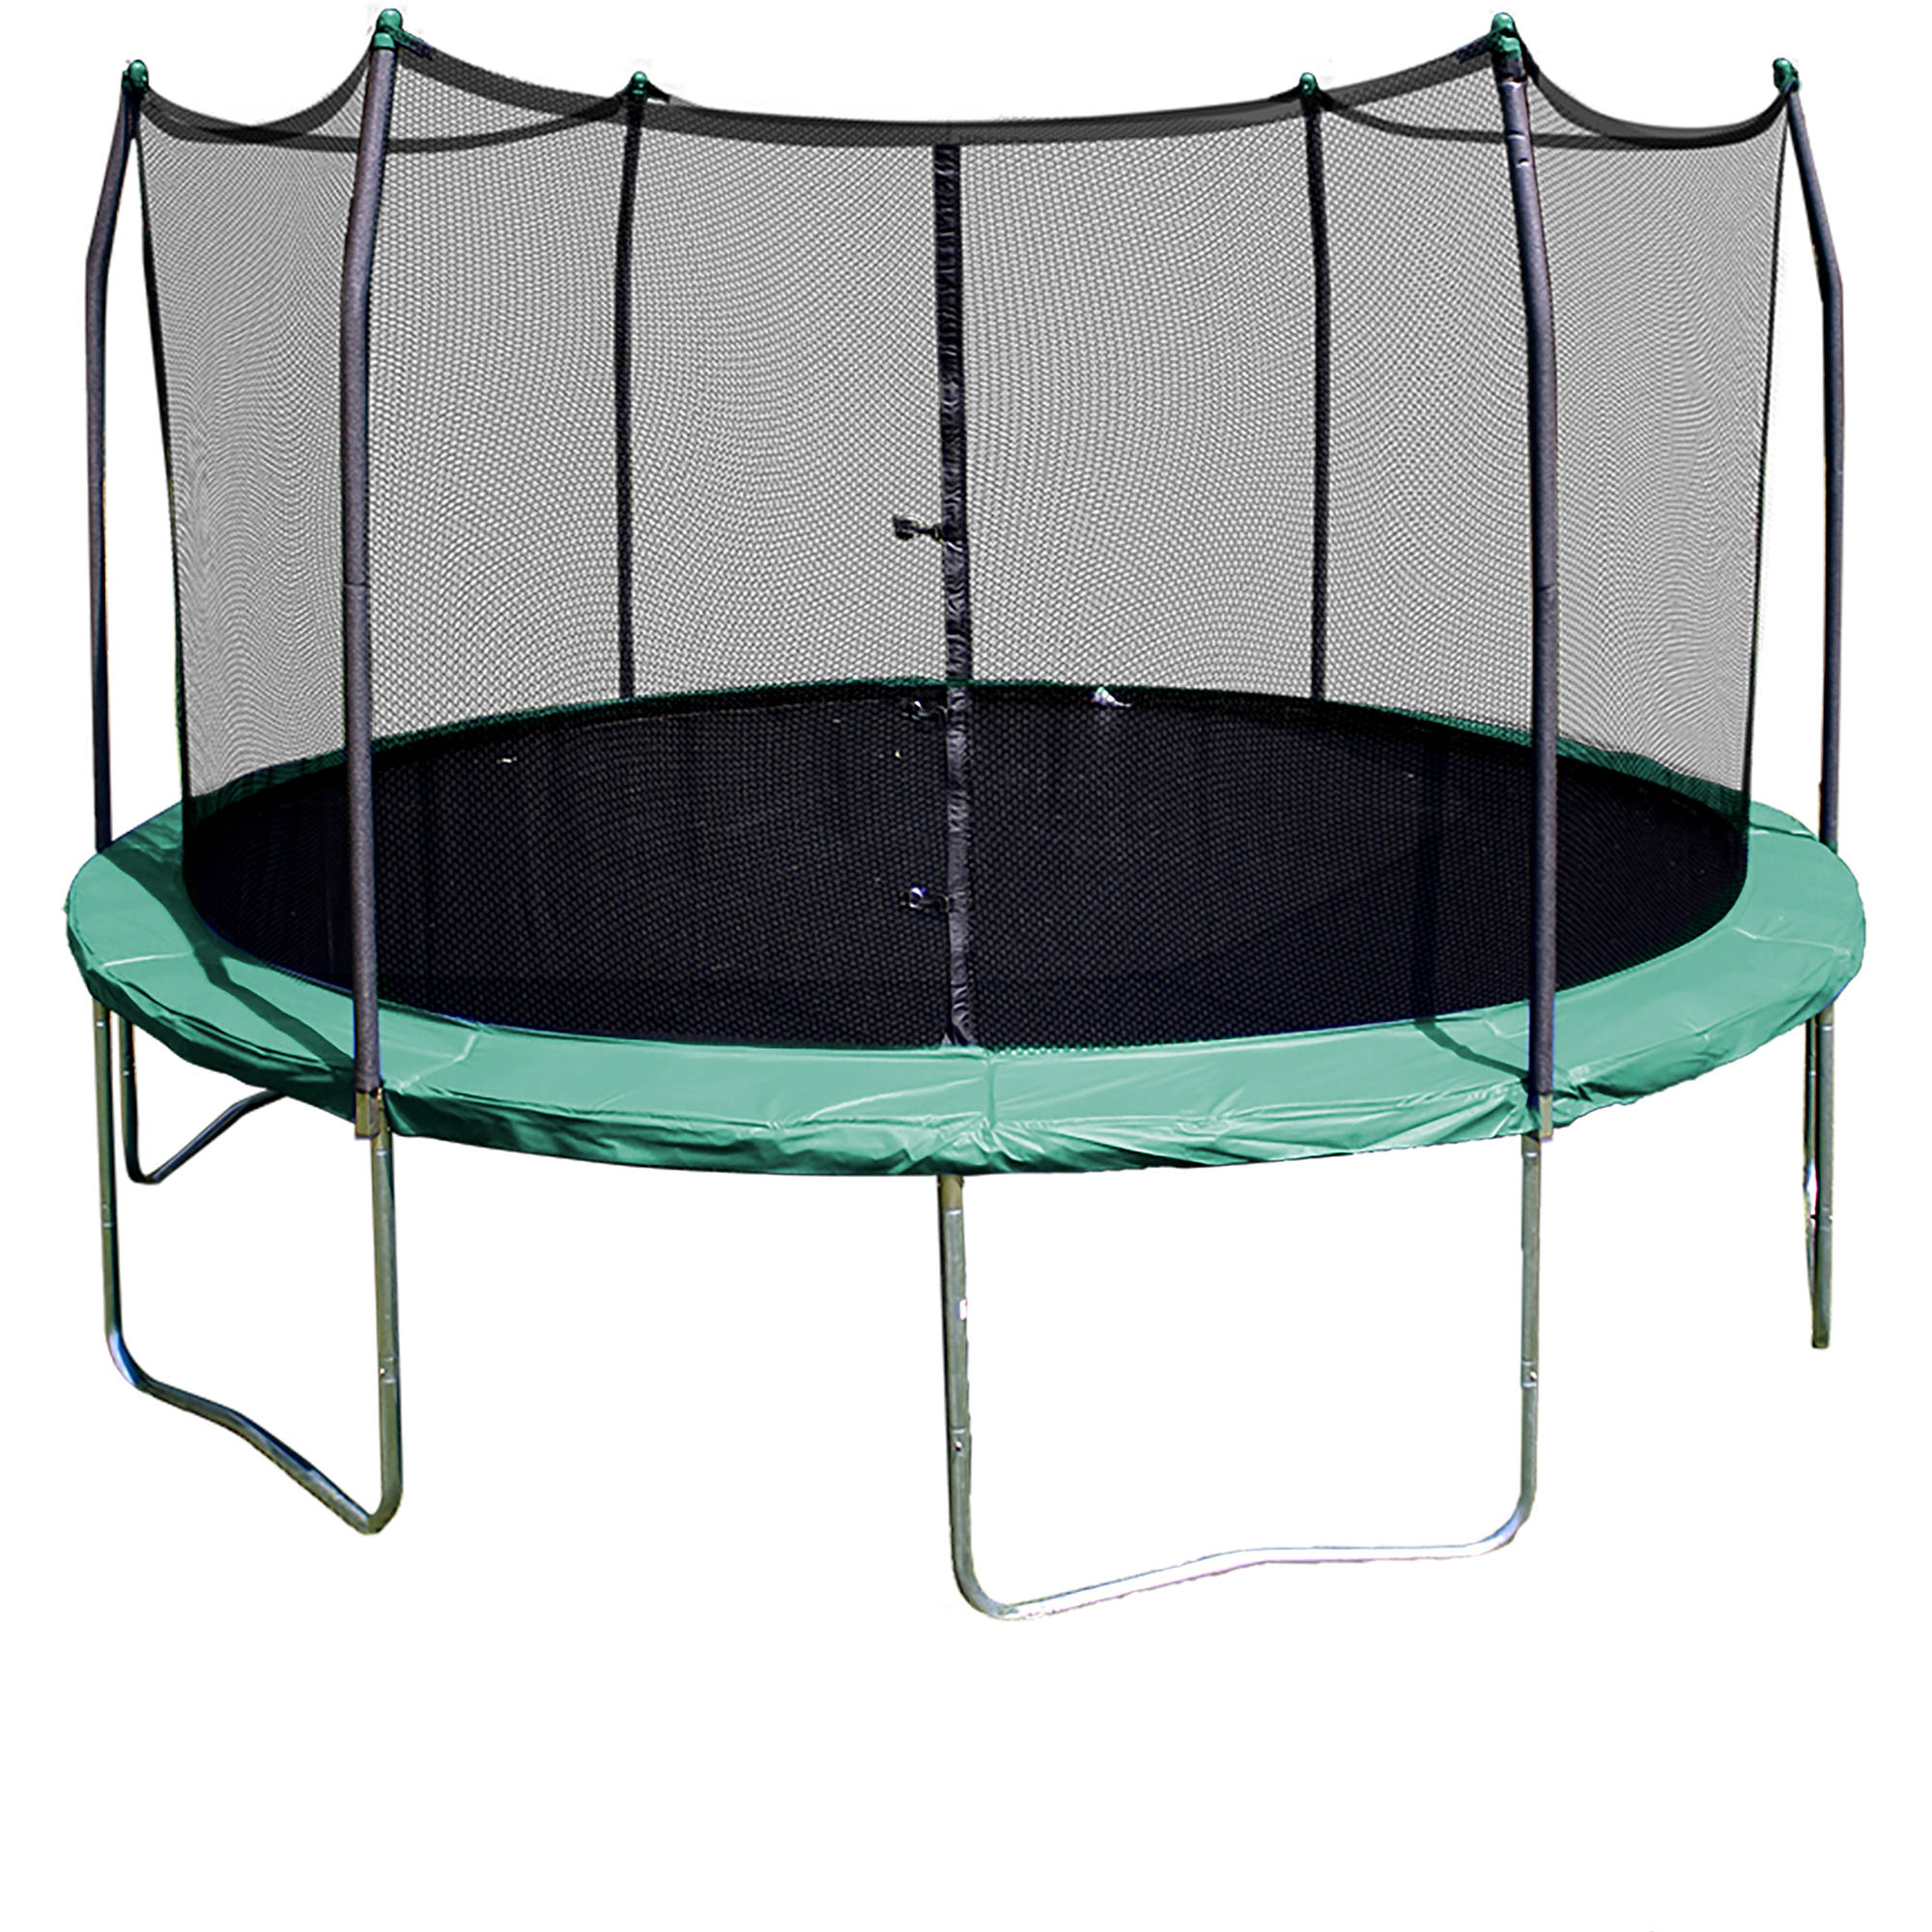 Skywalker Trampolines 12' Round Trampoline with Enclosure - Green